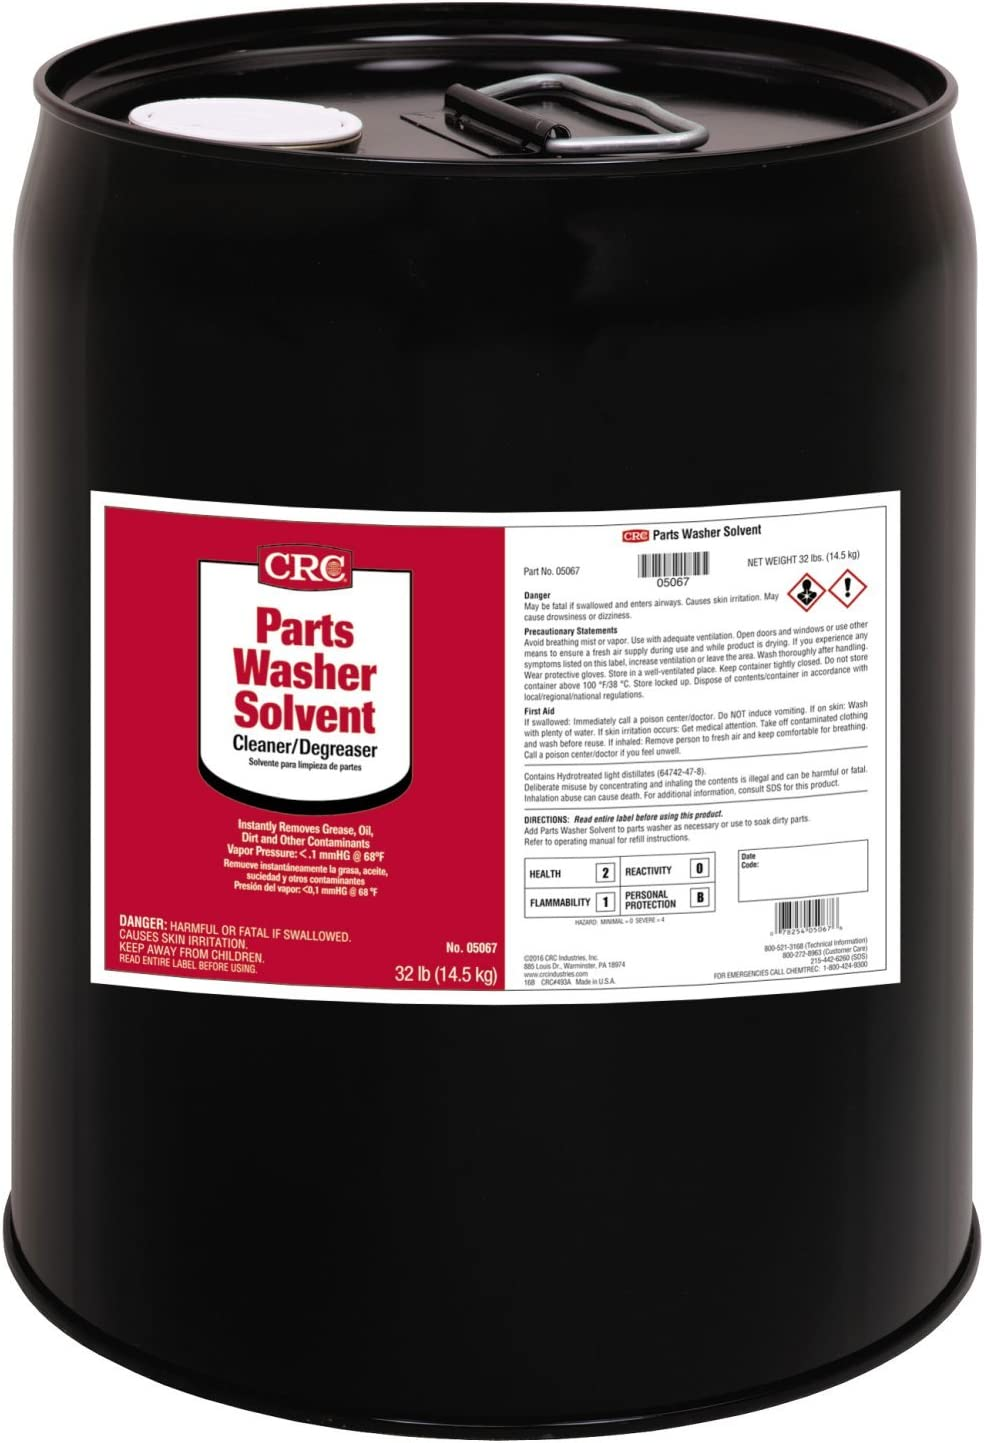 CRC 05067 Parts Washer Solvent